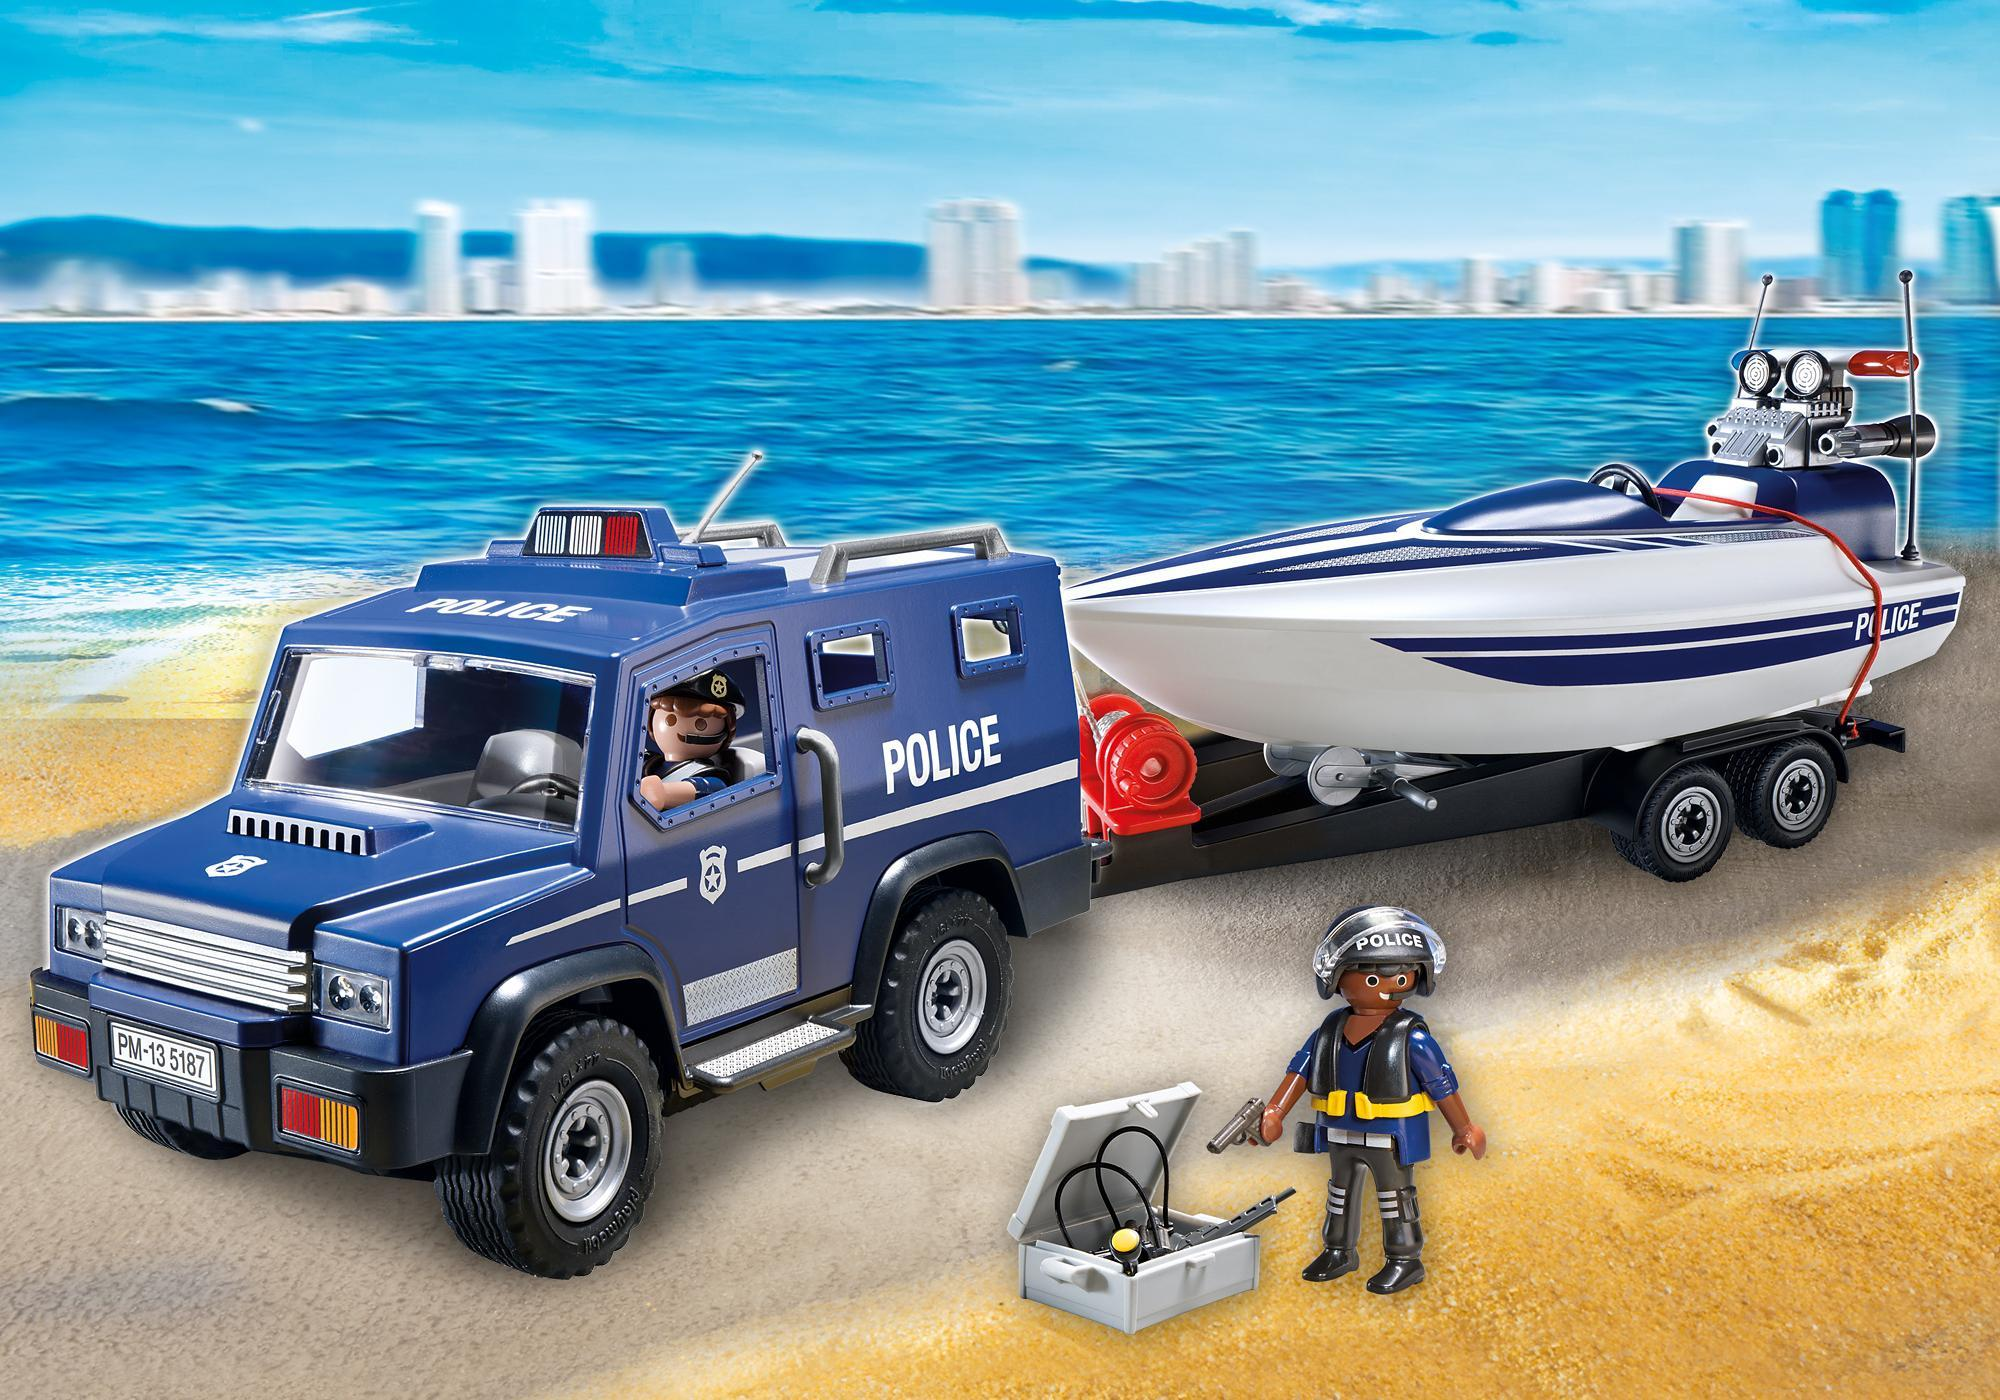 http://media.playmobil.com/i/playmobil/5187_product_detail/Police Truck with Speedboat